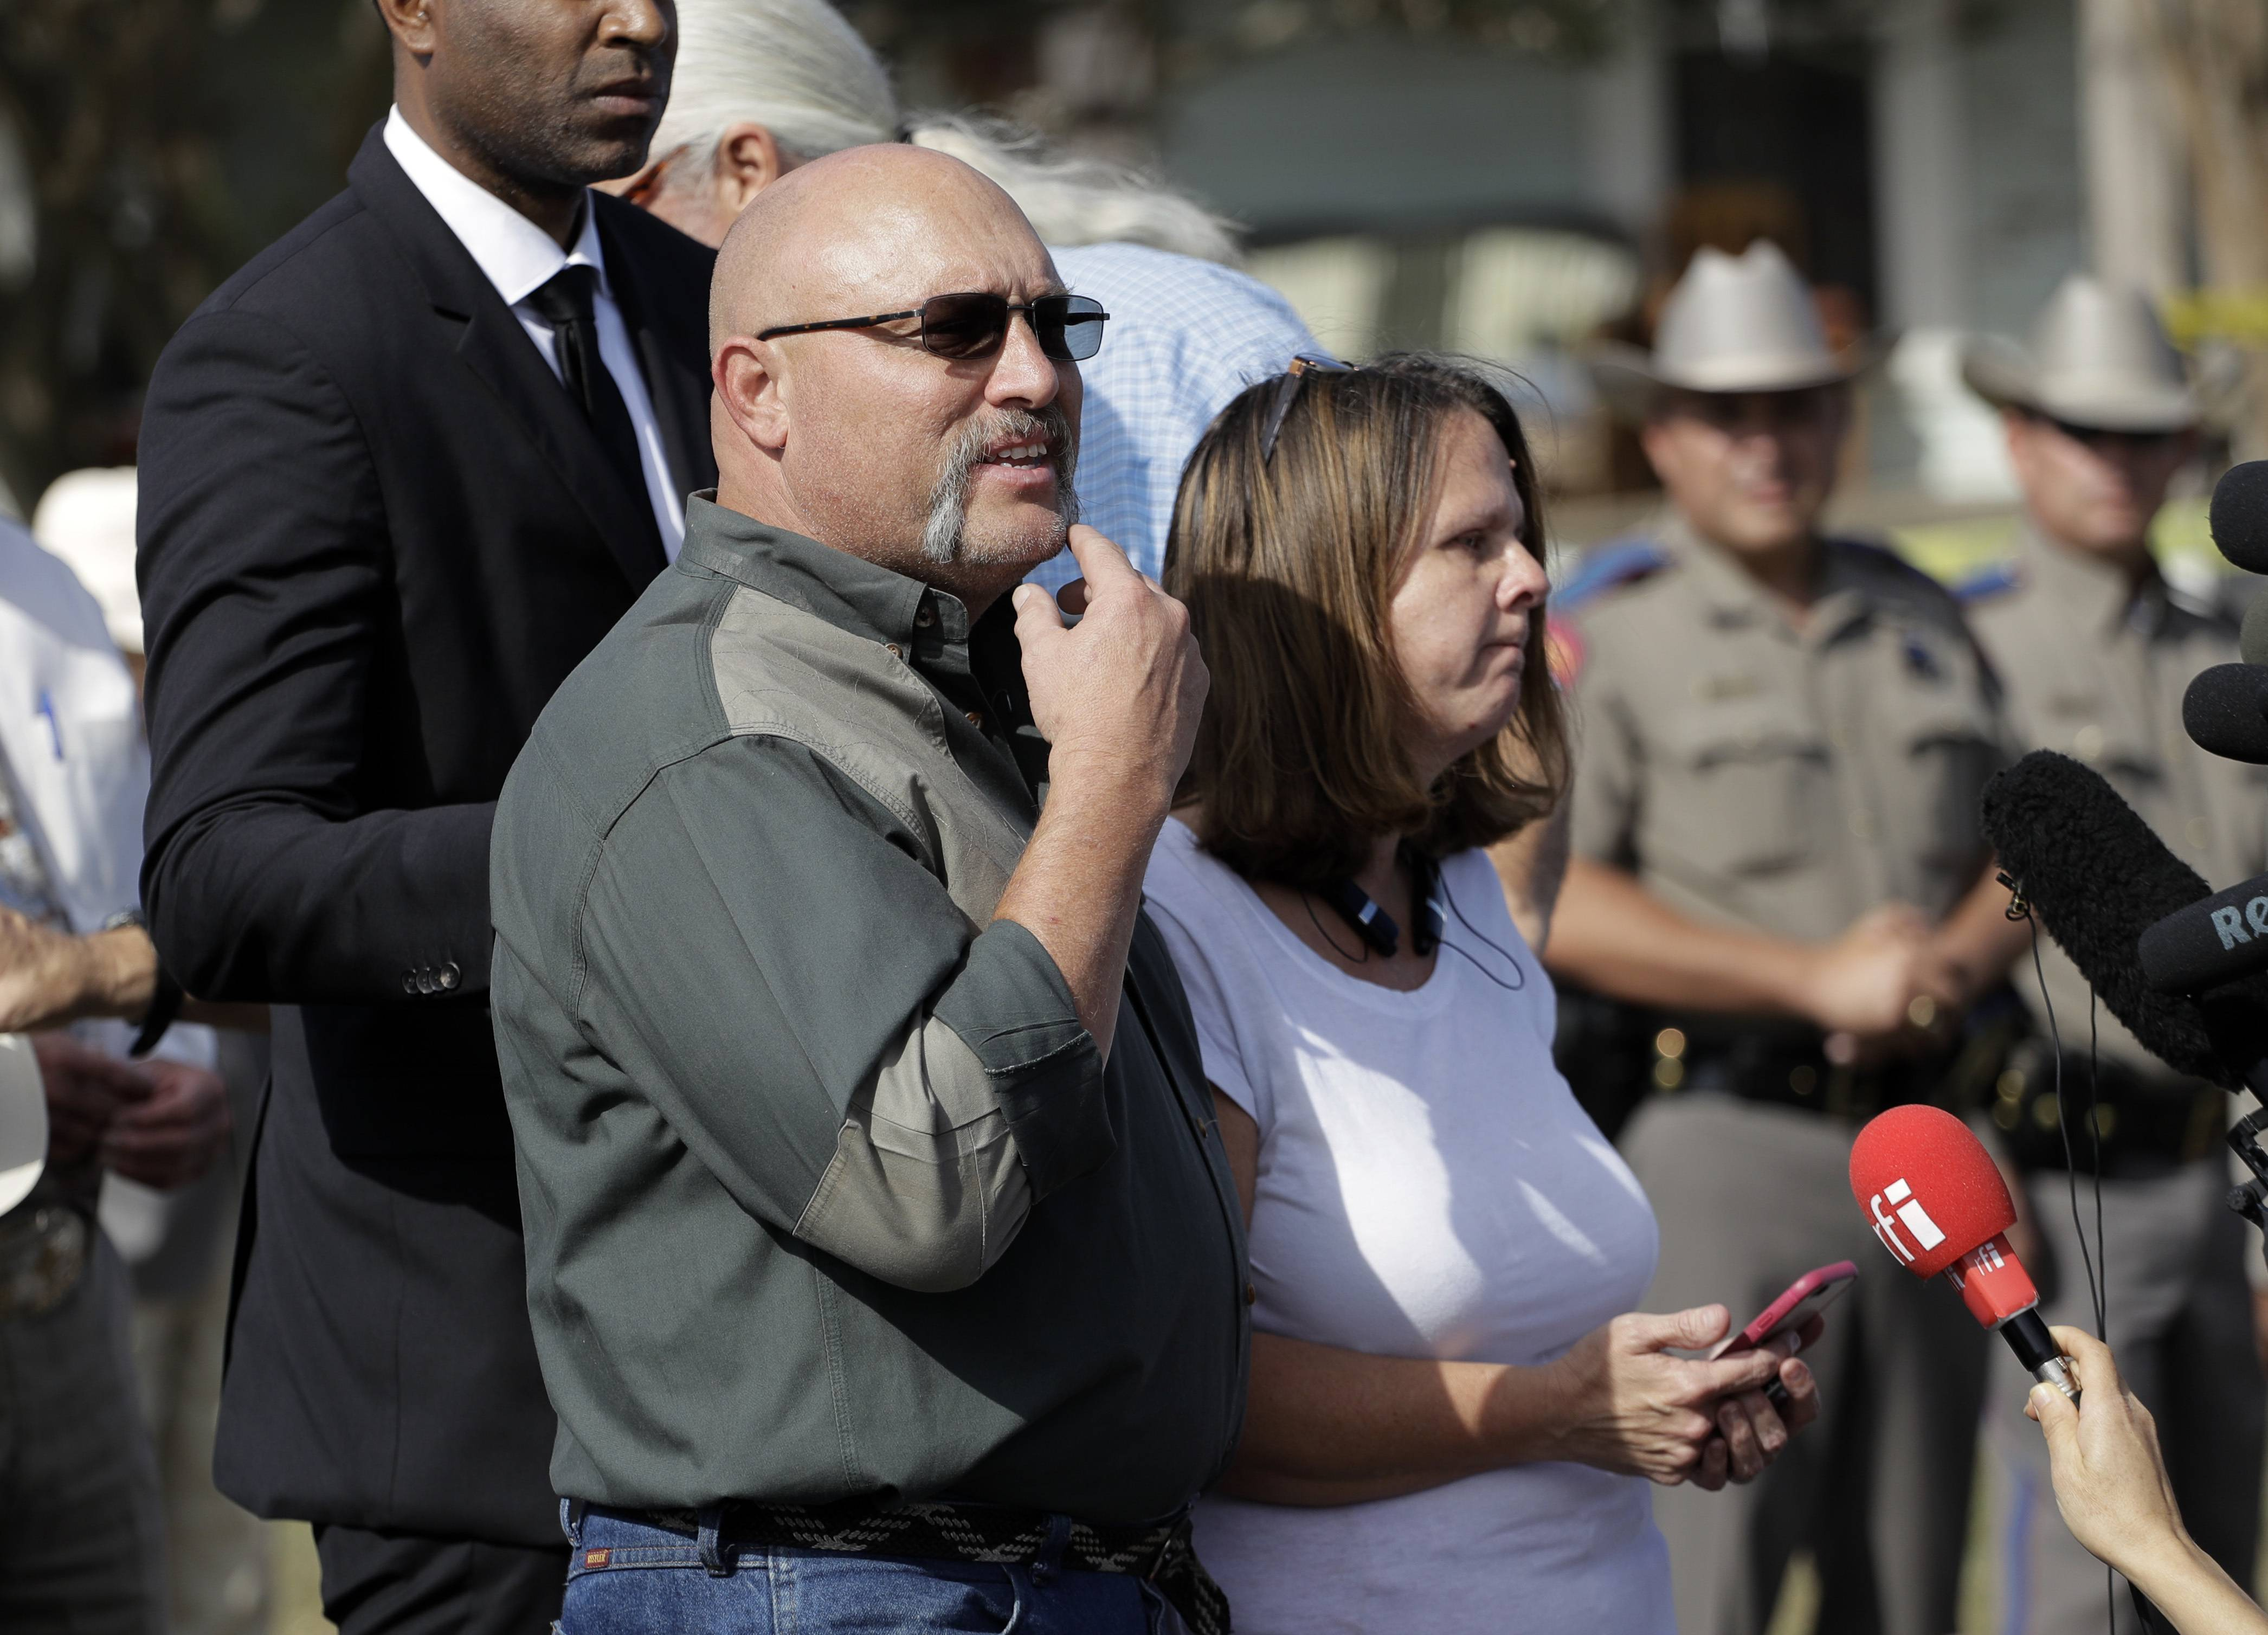 Pastor Frank Pomeroy, shown here with his wife, Sherri, at a news conference near the First Baptist Church of Sutherland Springs after the shooting, confronted two conspiracy theorists who say the mass shooting was staged.